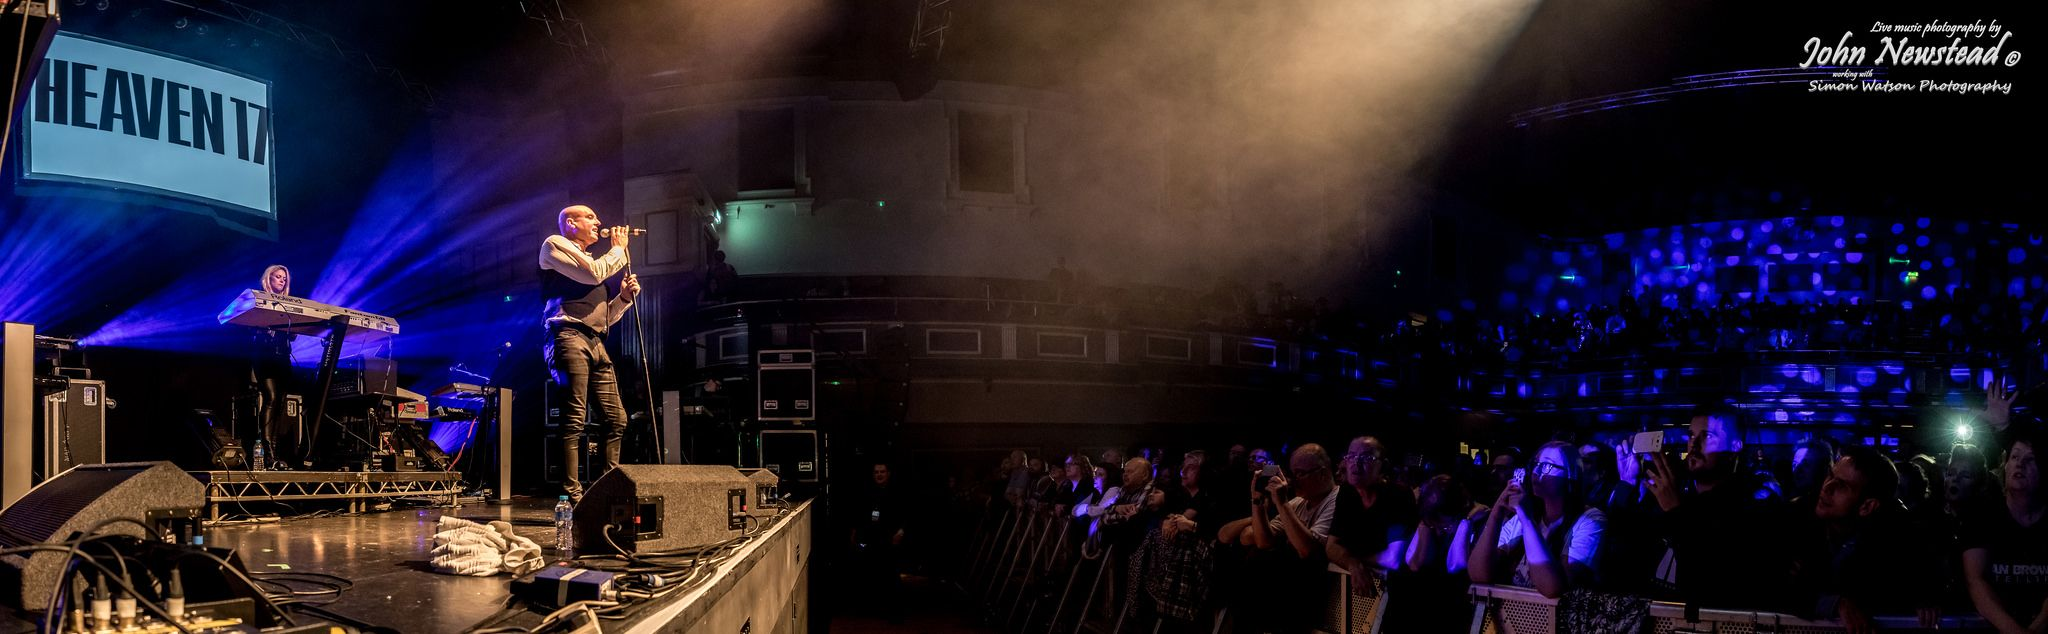 https://flic.kr/p/Cz7SkK | Heaven 17 (pano) | Heaven 17 at the Steve Strange Memorial Post Christmas Party at Parr Hall, Warrington on Saturday 24th January 2016. ©John Newstead working with Simon Watson Photography